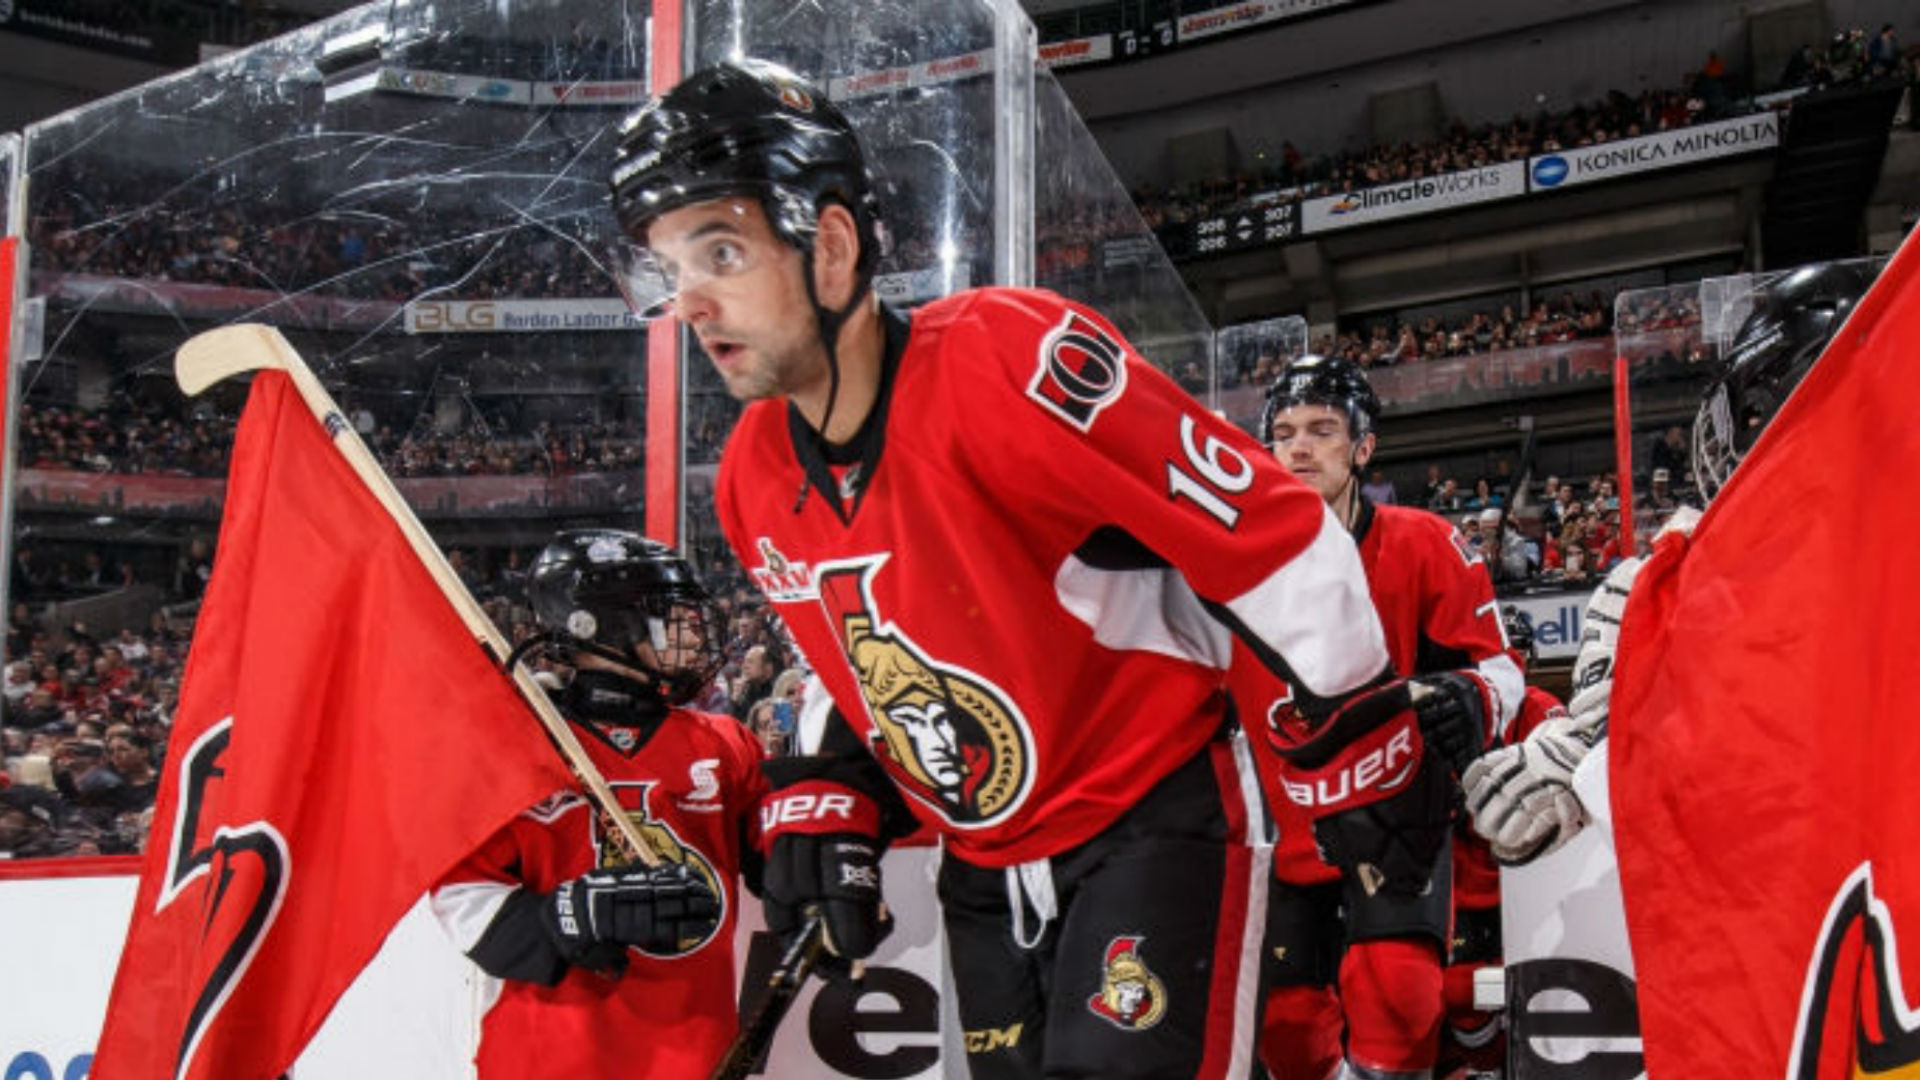 Senators forward Clarke MacArthur fails physical